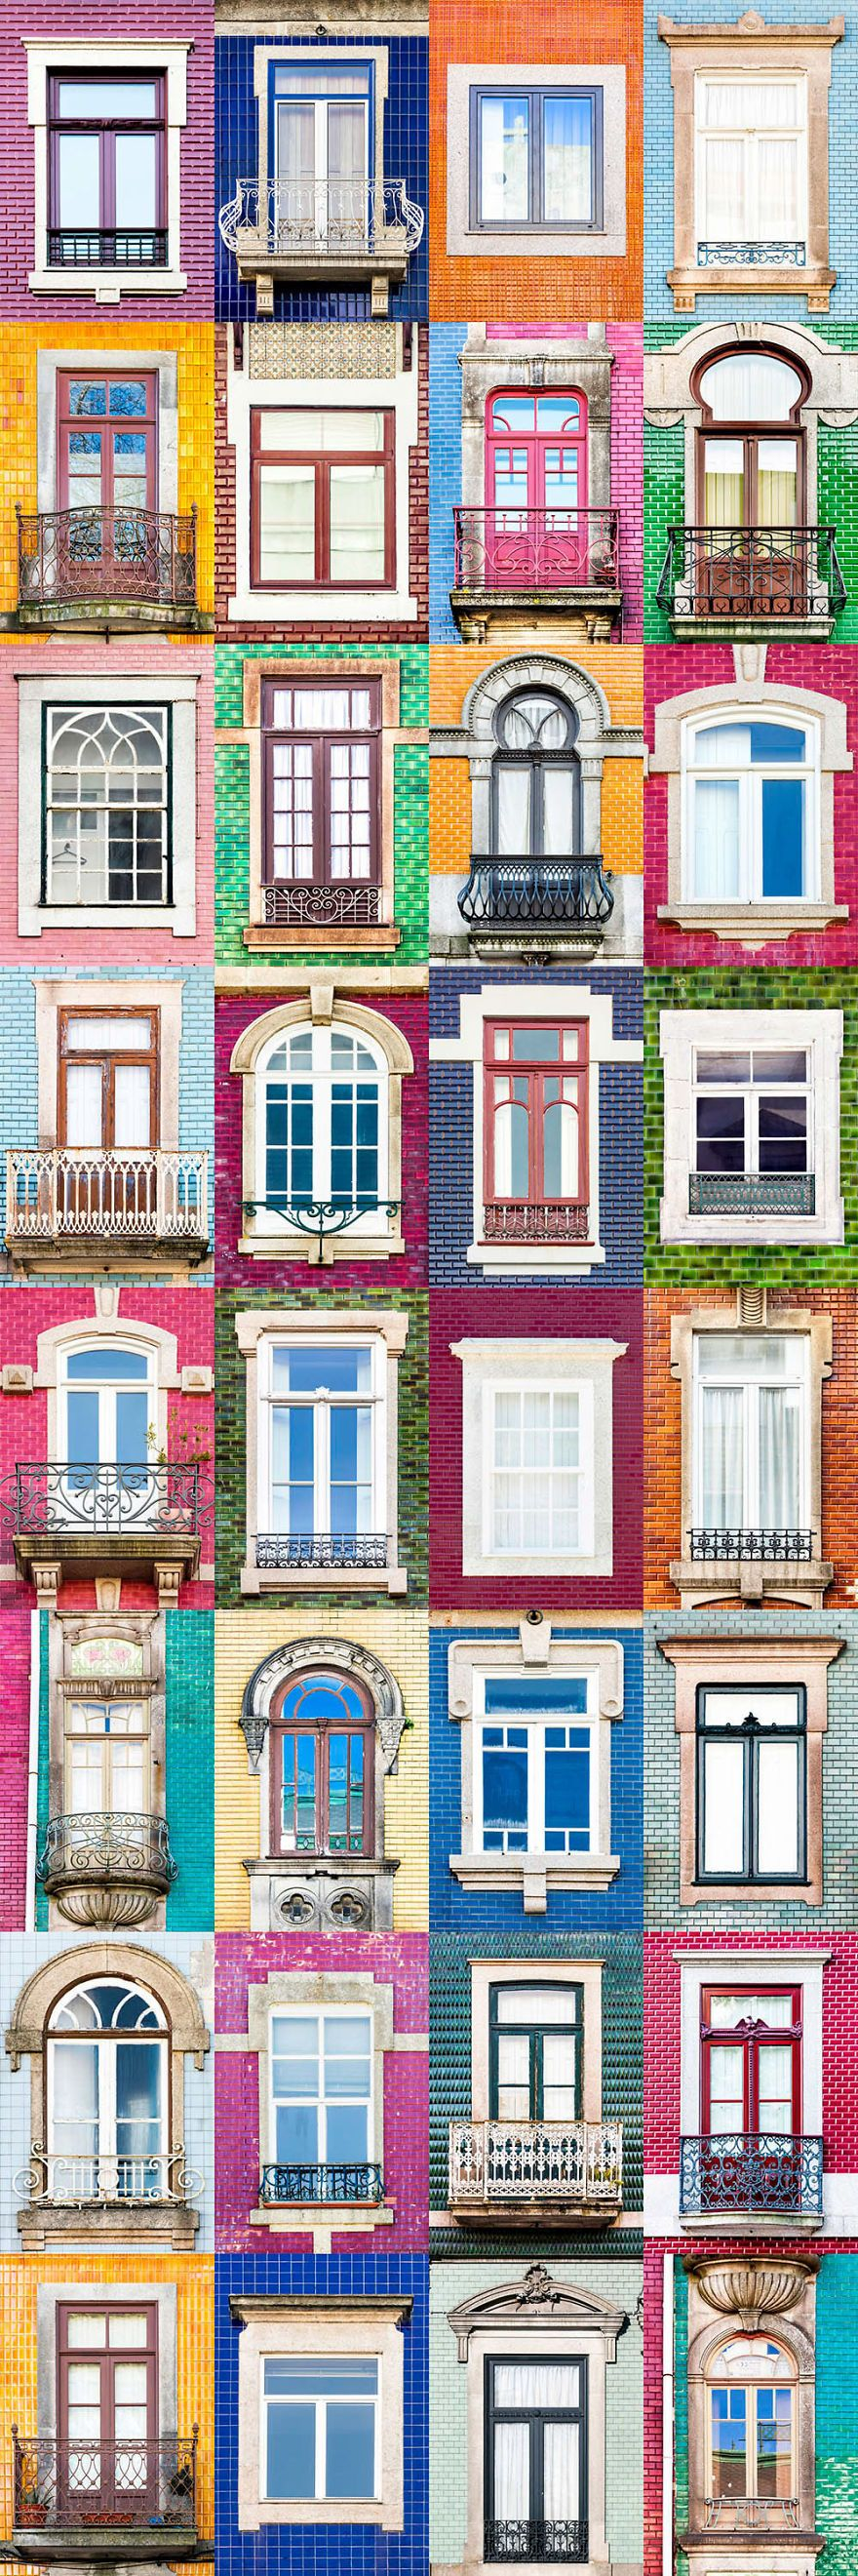 #colourful #creative #art #pink #pink #orange #grey #skyblue #blue #green #yellow #turquoise #traveltoportugal